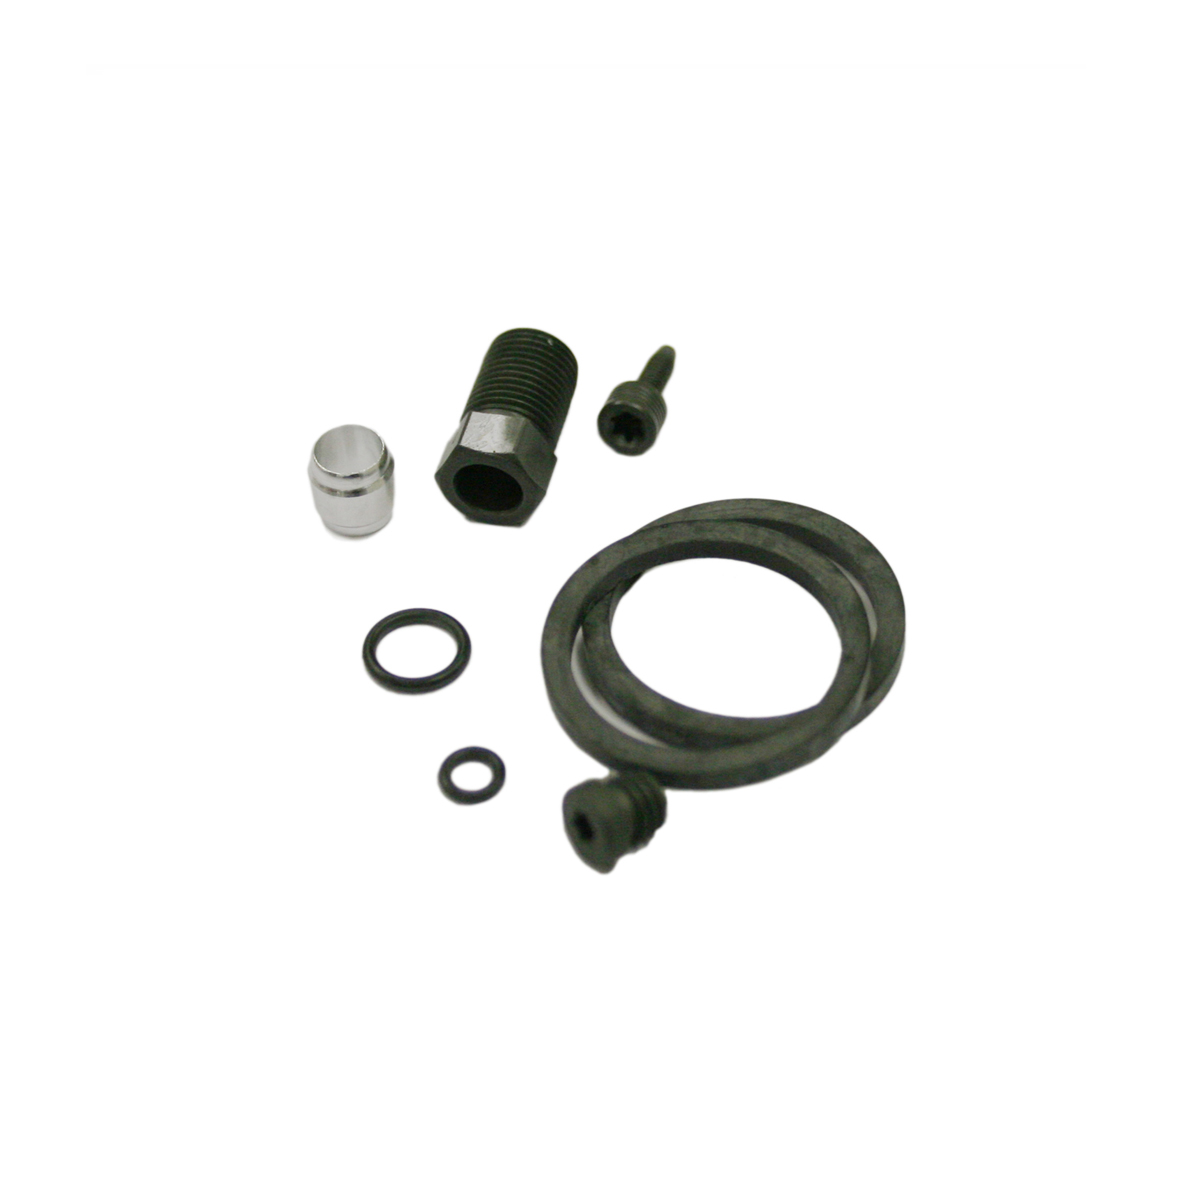 AVID SPARE - DISC BRAKE SERVICE CALIPER JUICY 3 CALIPER SERVICE KIT, QTY1: